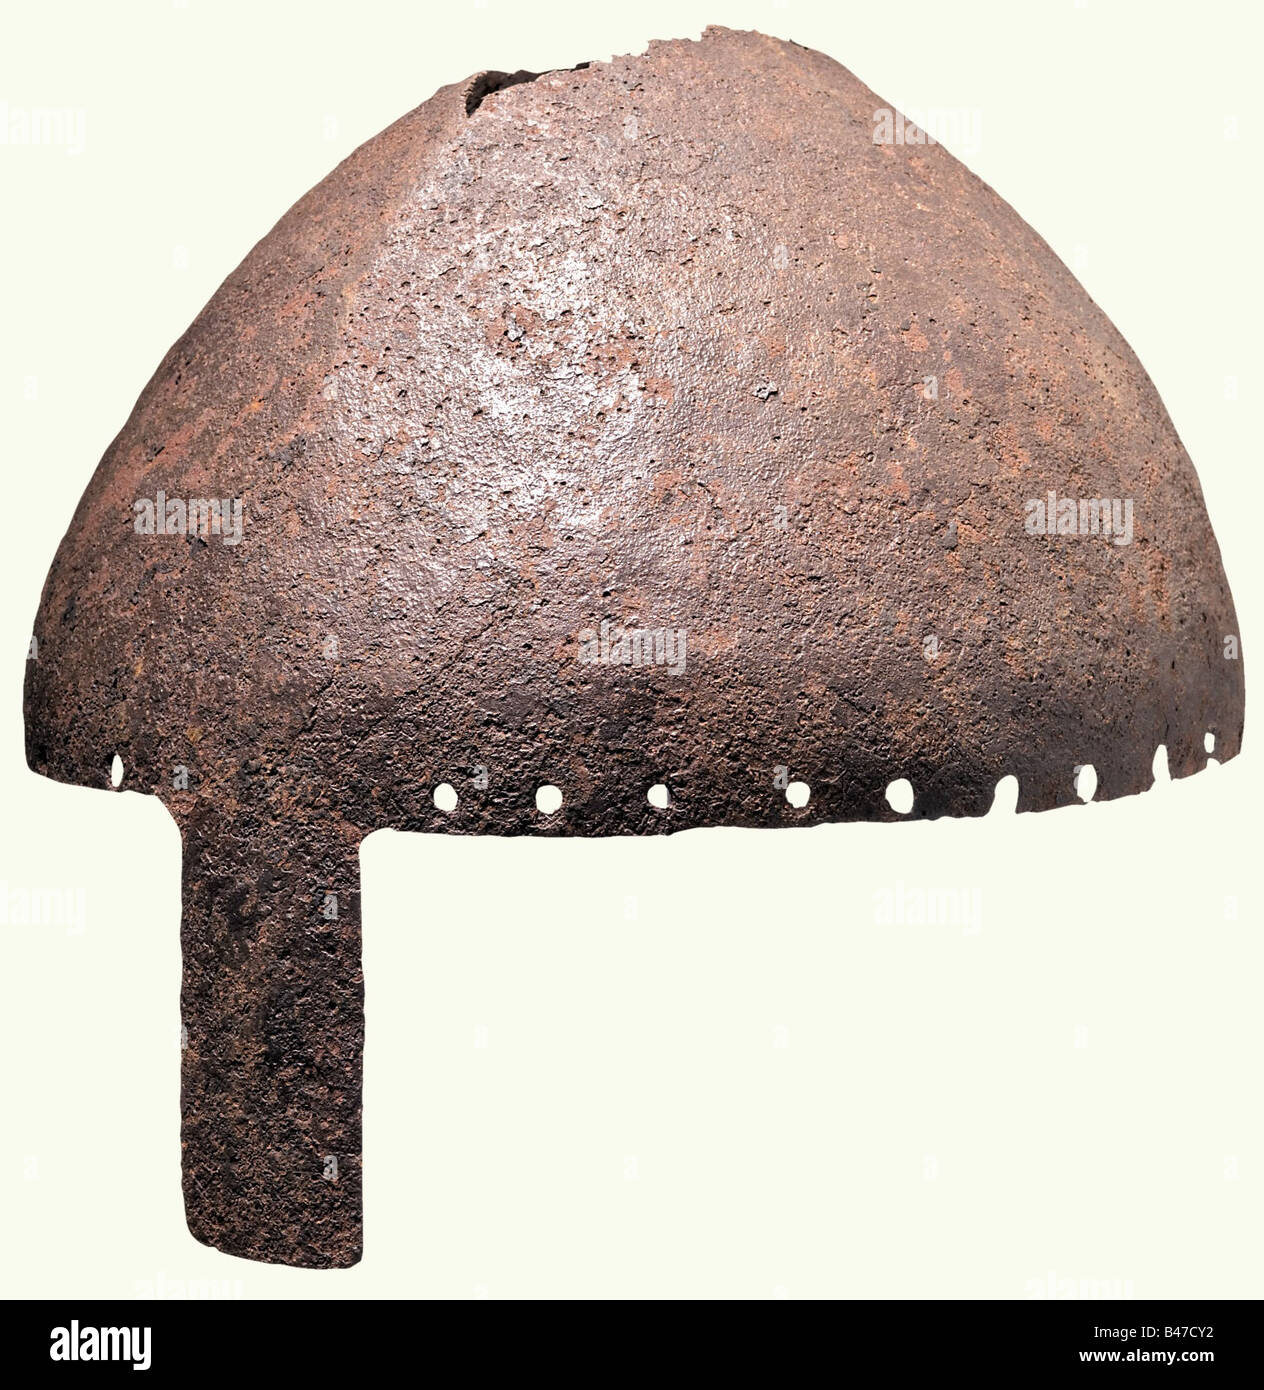 A helmet with nasal, Central Europe, 10th/11th century. Slightly ridged skull, forged in one piece. There is severe Stock Photo